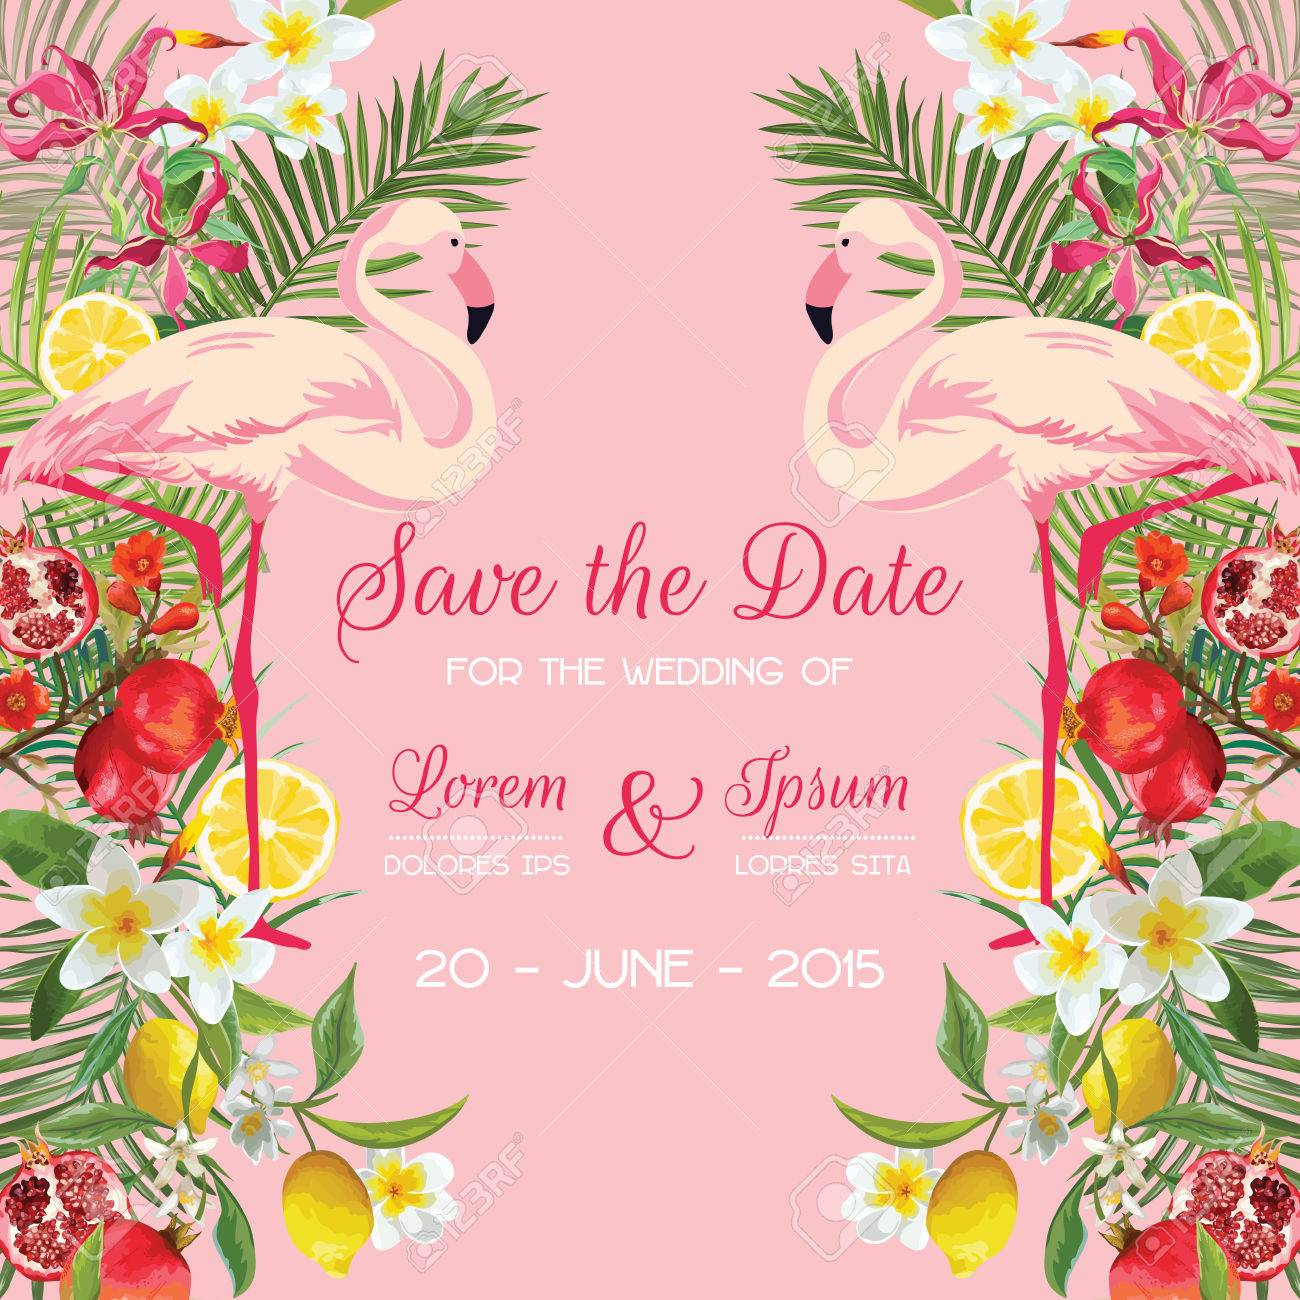 Save the Date Wedding Card with Tropical Flowers, Fruits, Flamingo Bird. Floral Background in vector - 83062797